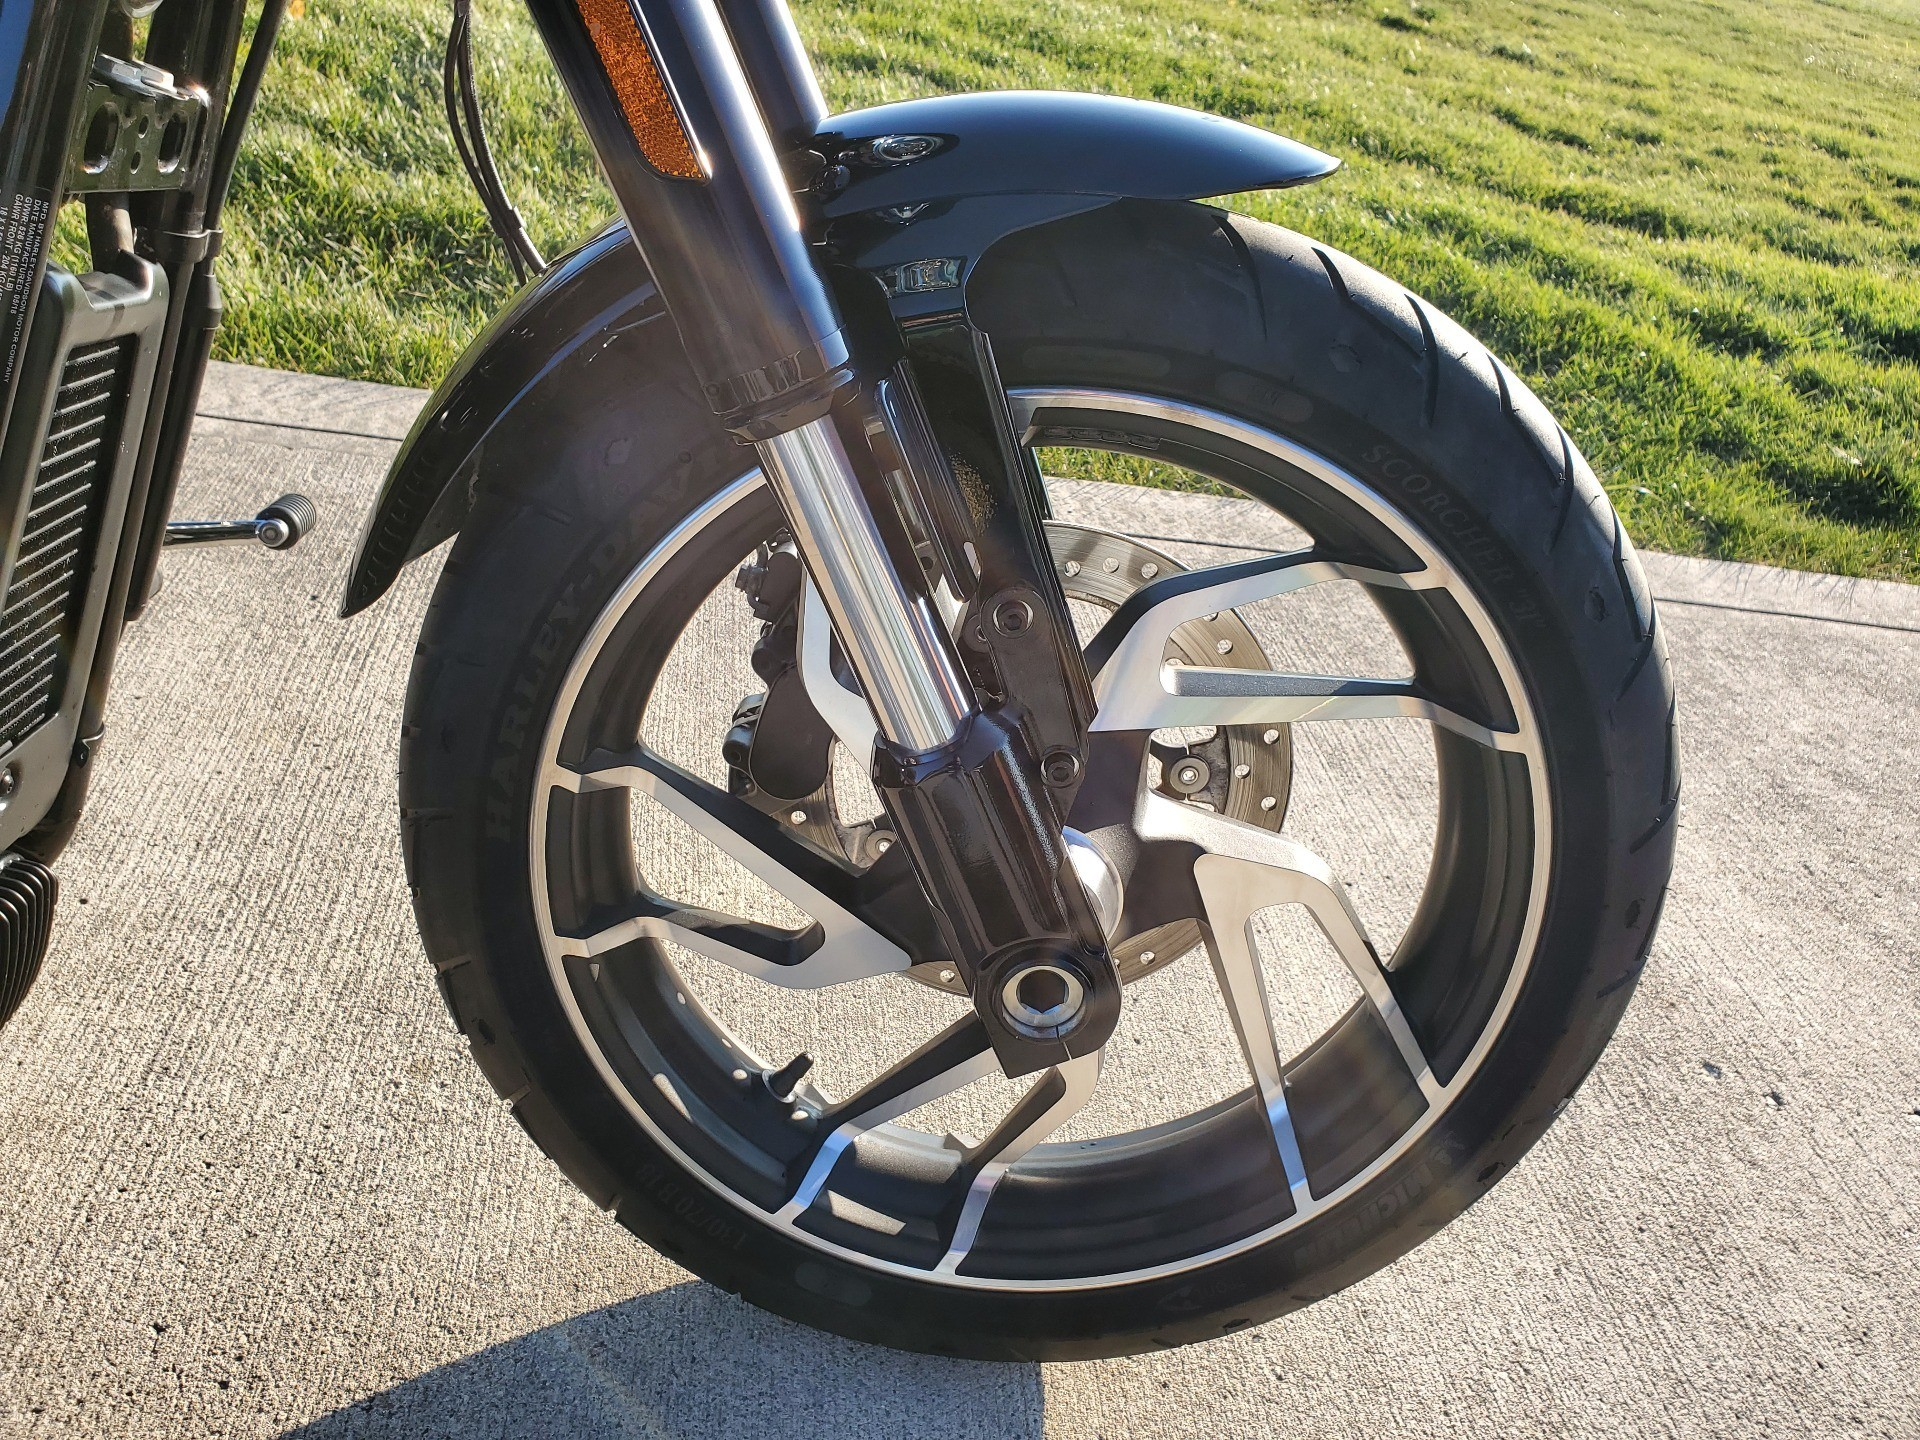 2018 Harley-Davidson Sport Glide® in Sunbury, Ohio - Photo 8